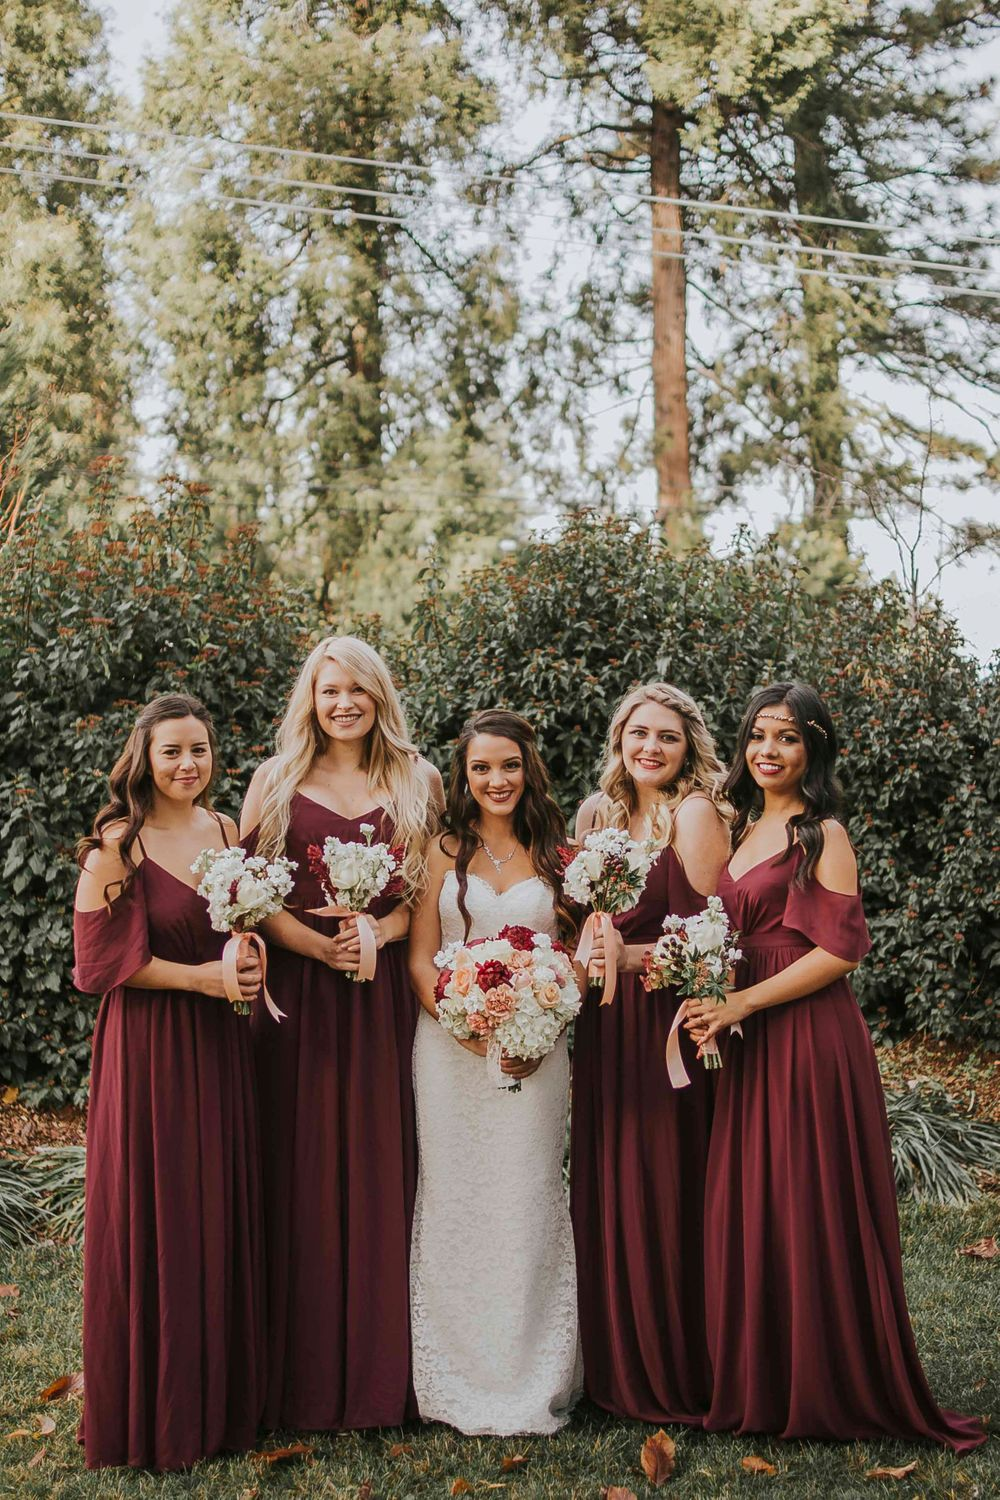 rebecca skidgel photography placerville winter wedding bride and bridesmaids smiling